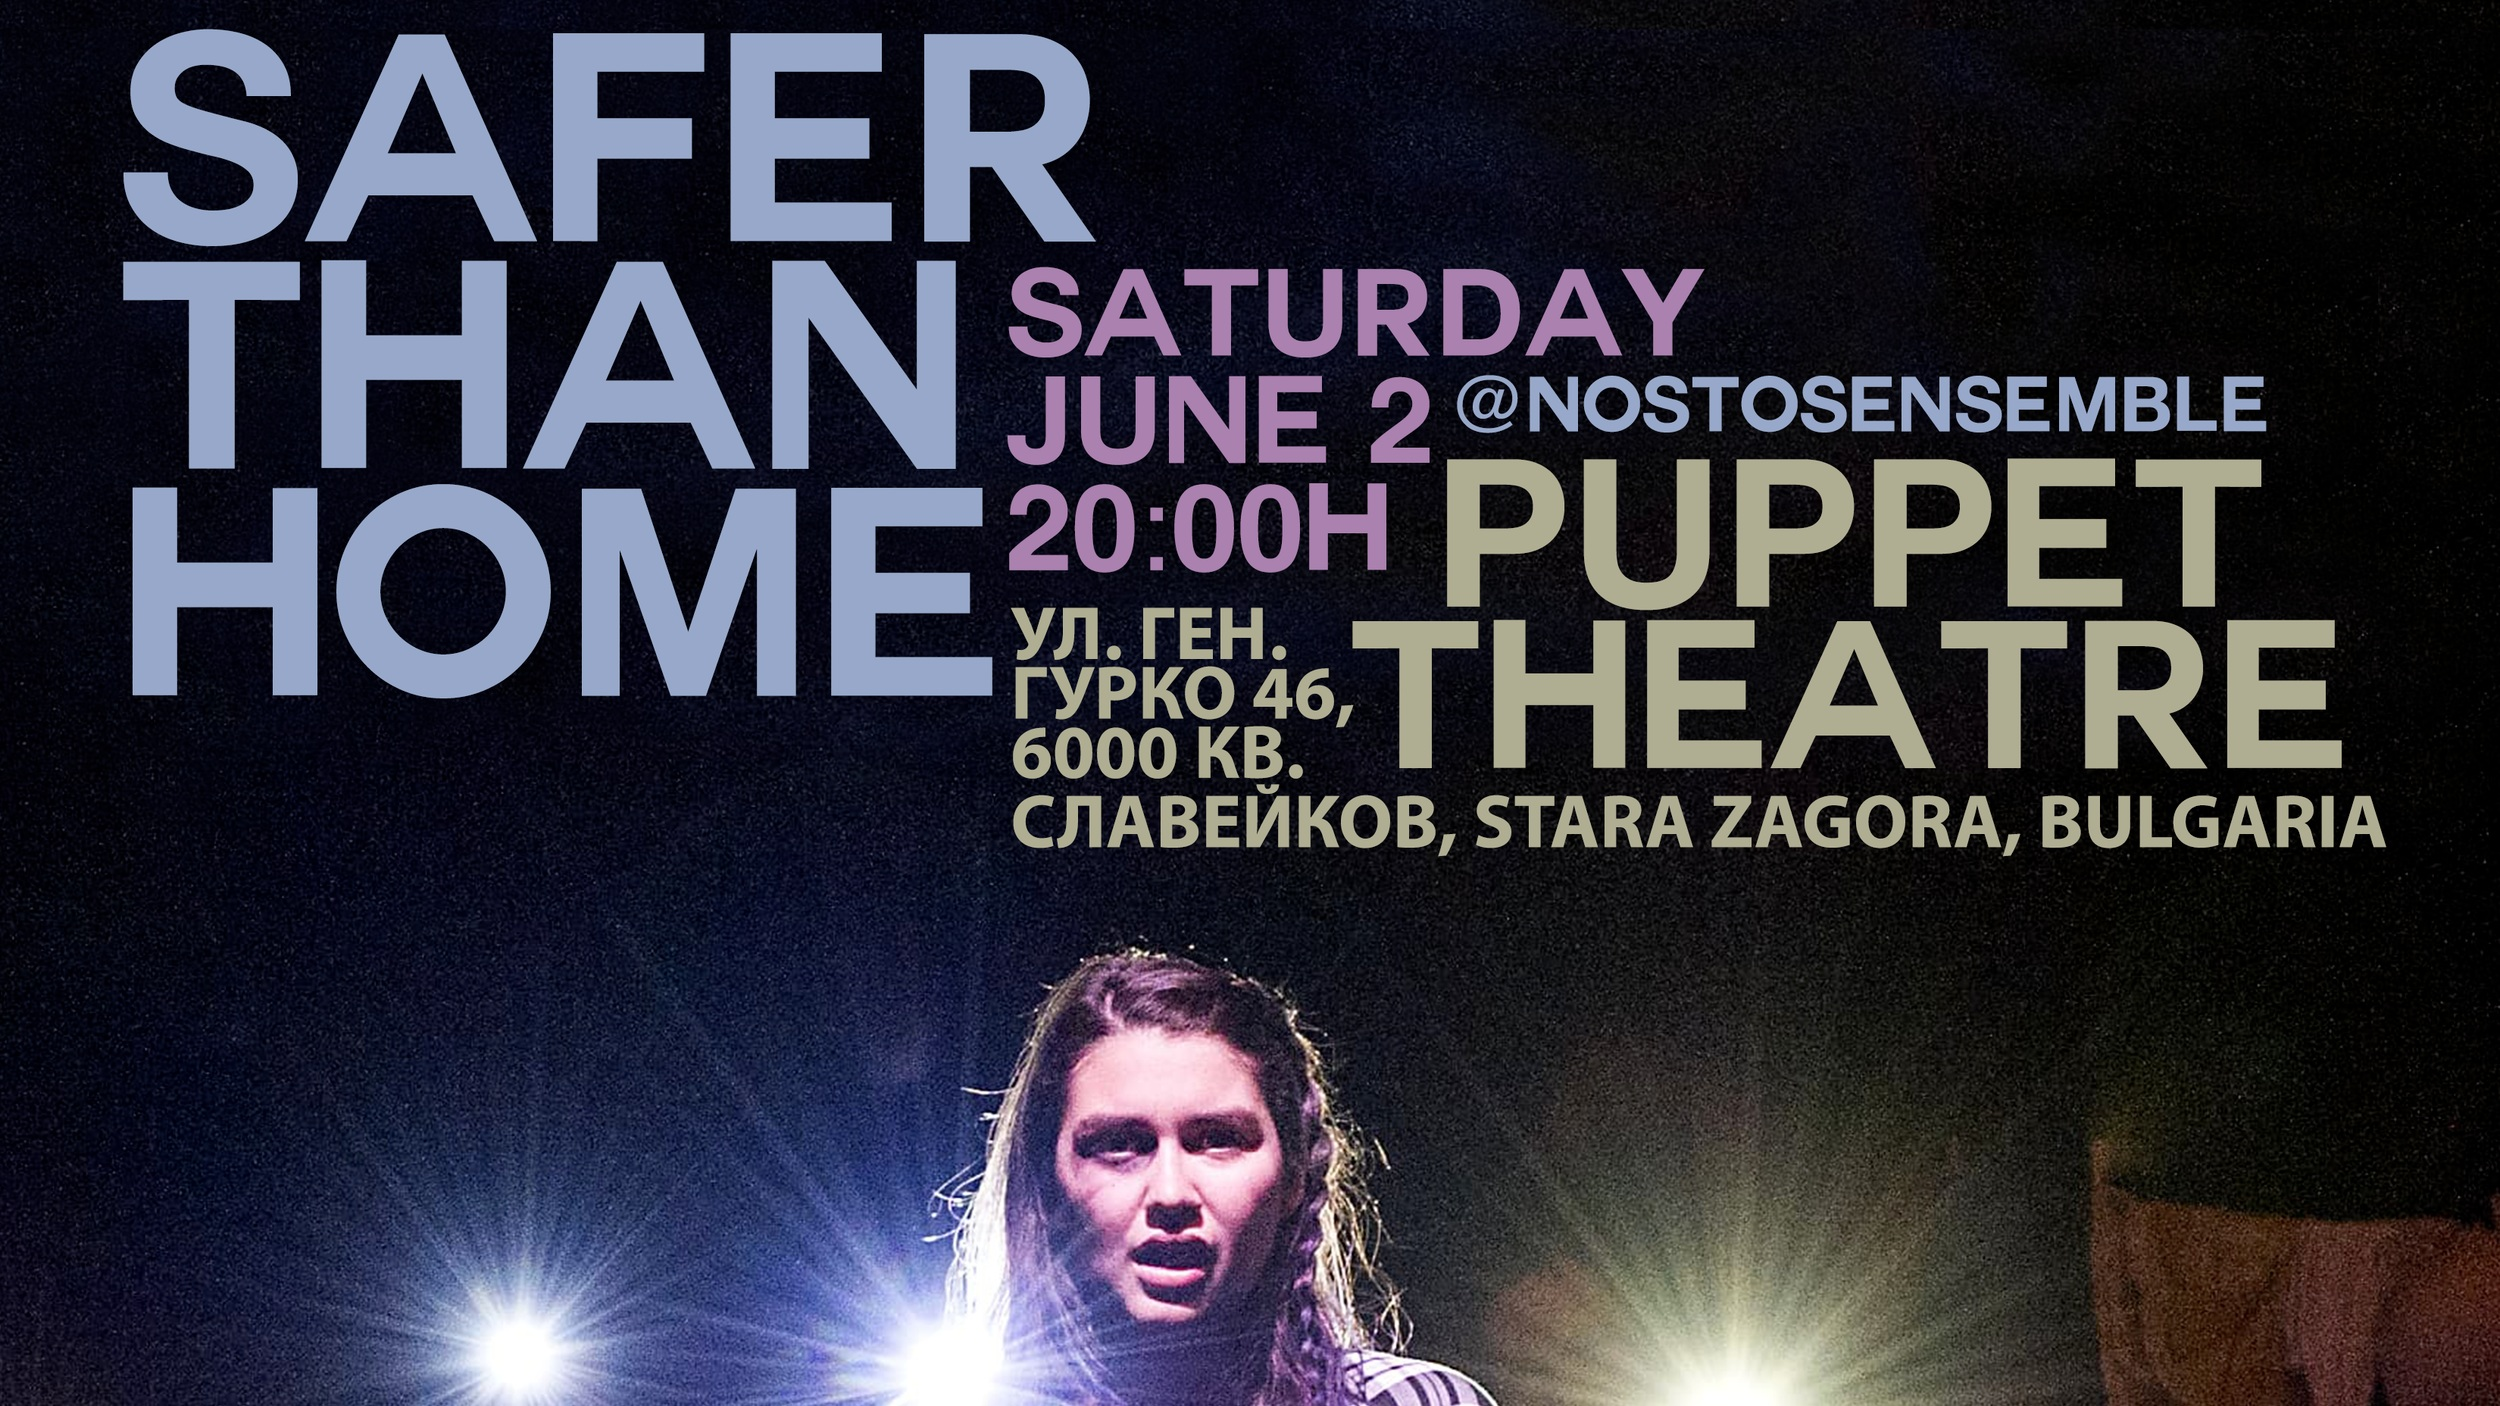 Safer Than Home - Ensemble (Devised)May 2017Pace School of Performing Arts, New York CityMay 4–8, 2018The Lion Theatre at Theatre RowJune 2, 2018State Puppet Theatre, Stara Zagora, Bulgaria